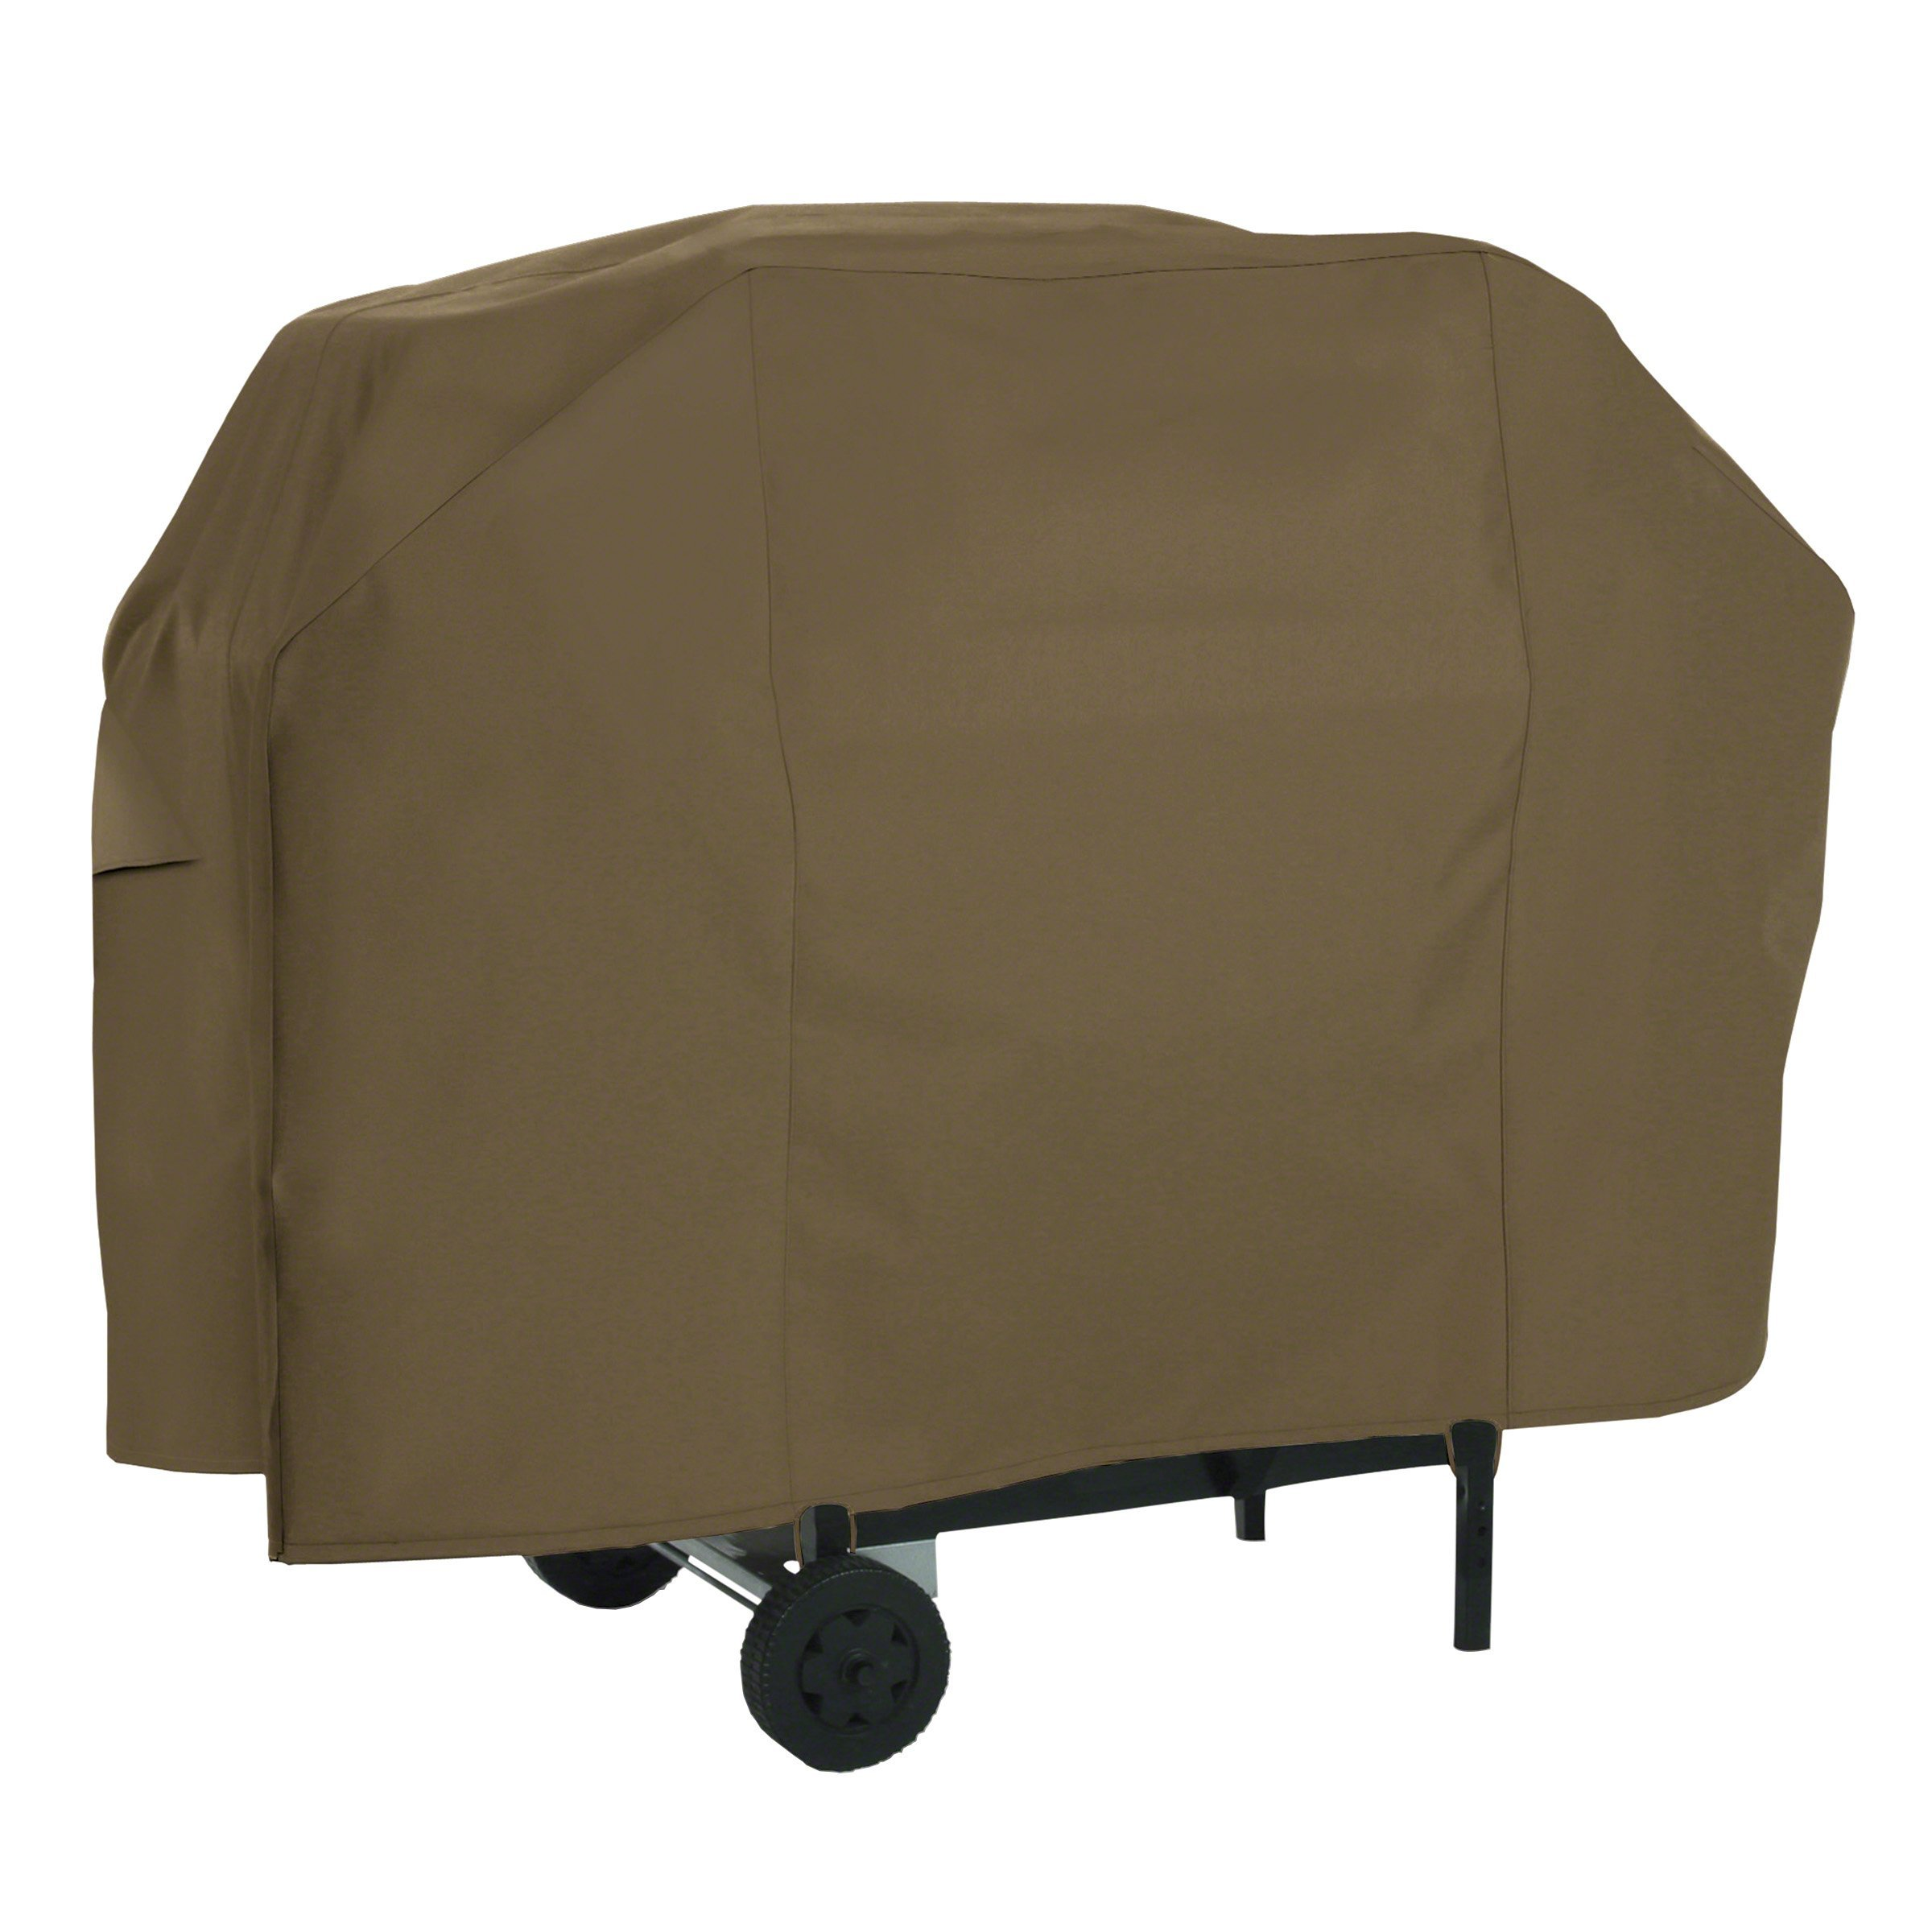 Classic Accessories 55-600-036601-Ec Gas Grill Cover Maverick Brown Up To 53-.. 2